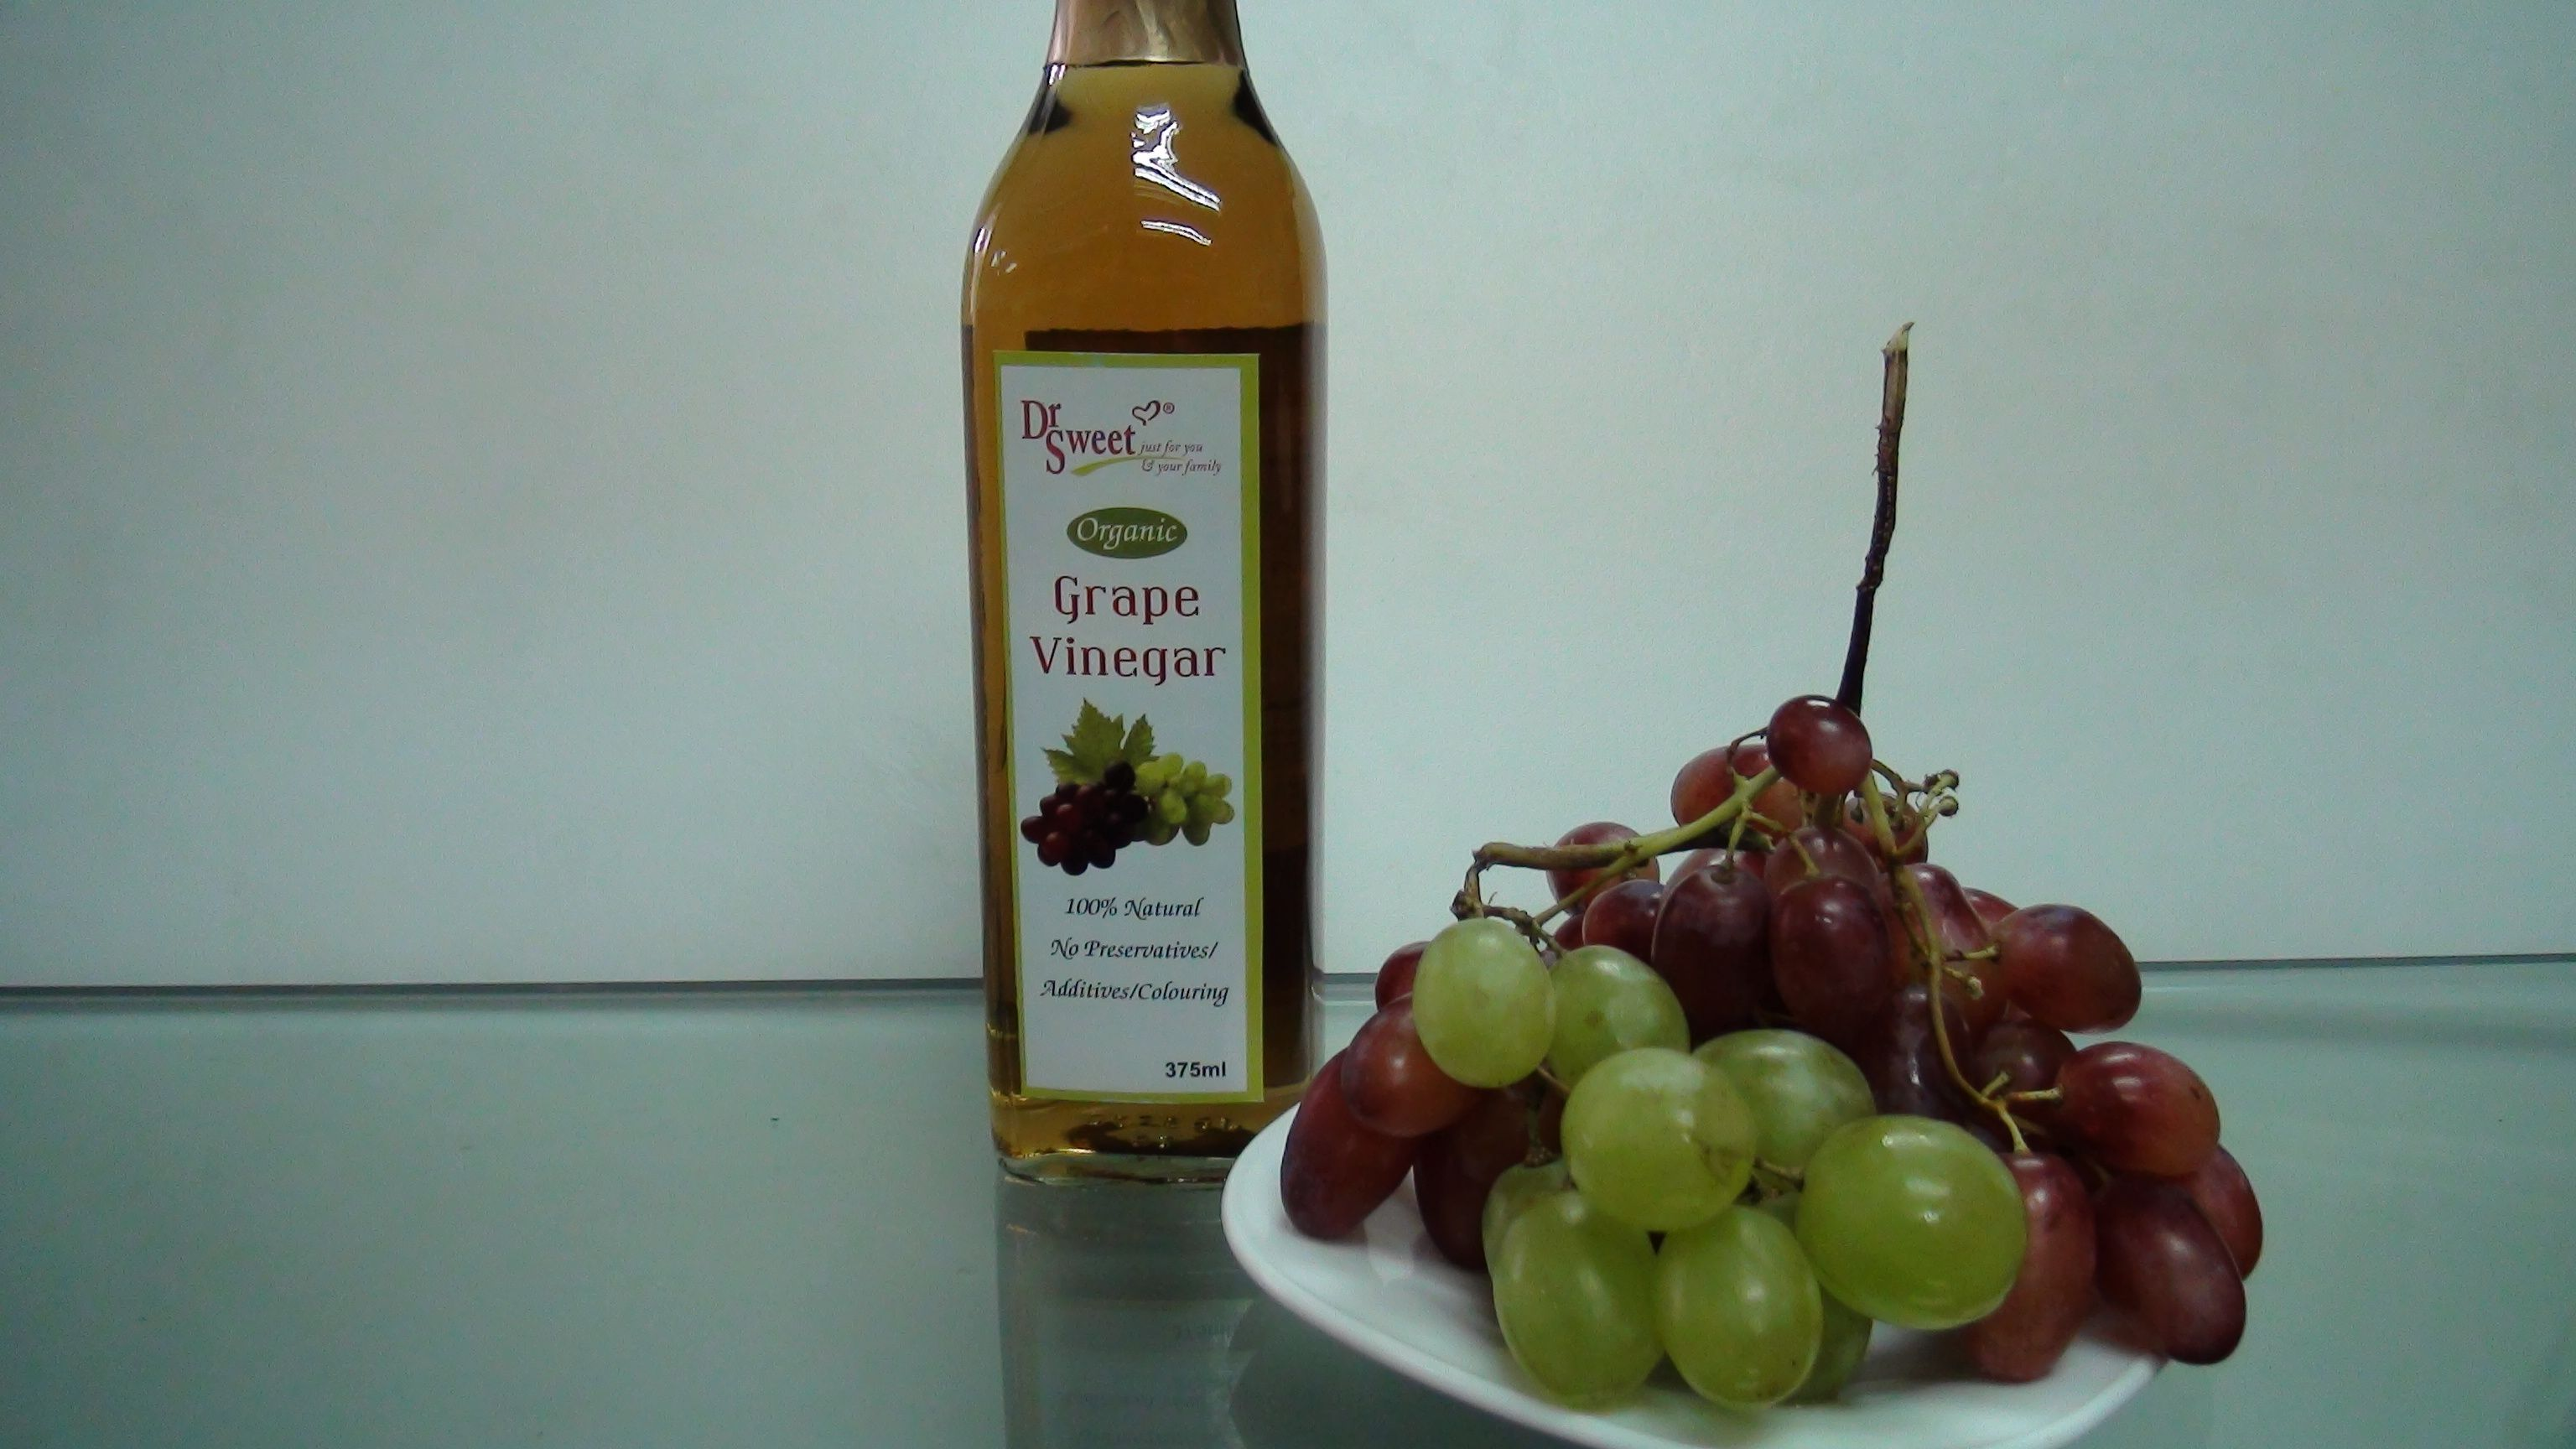 Grapes Vinegar Provides Such A Good Antioxidant And Other Health Benefits Grape Vinegar Grapes Pomegranate Concentrate